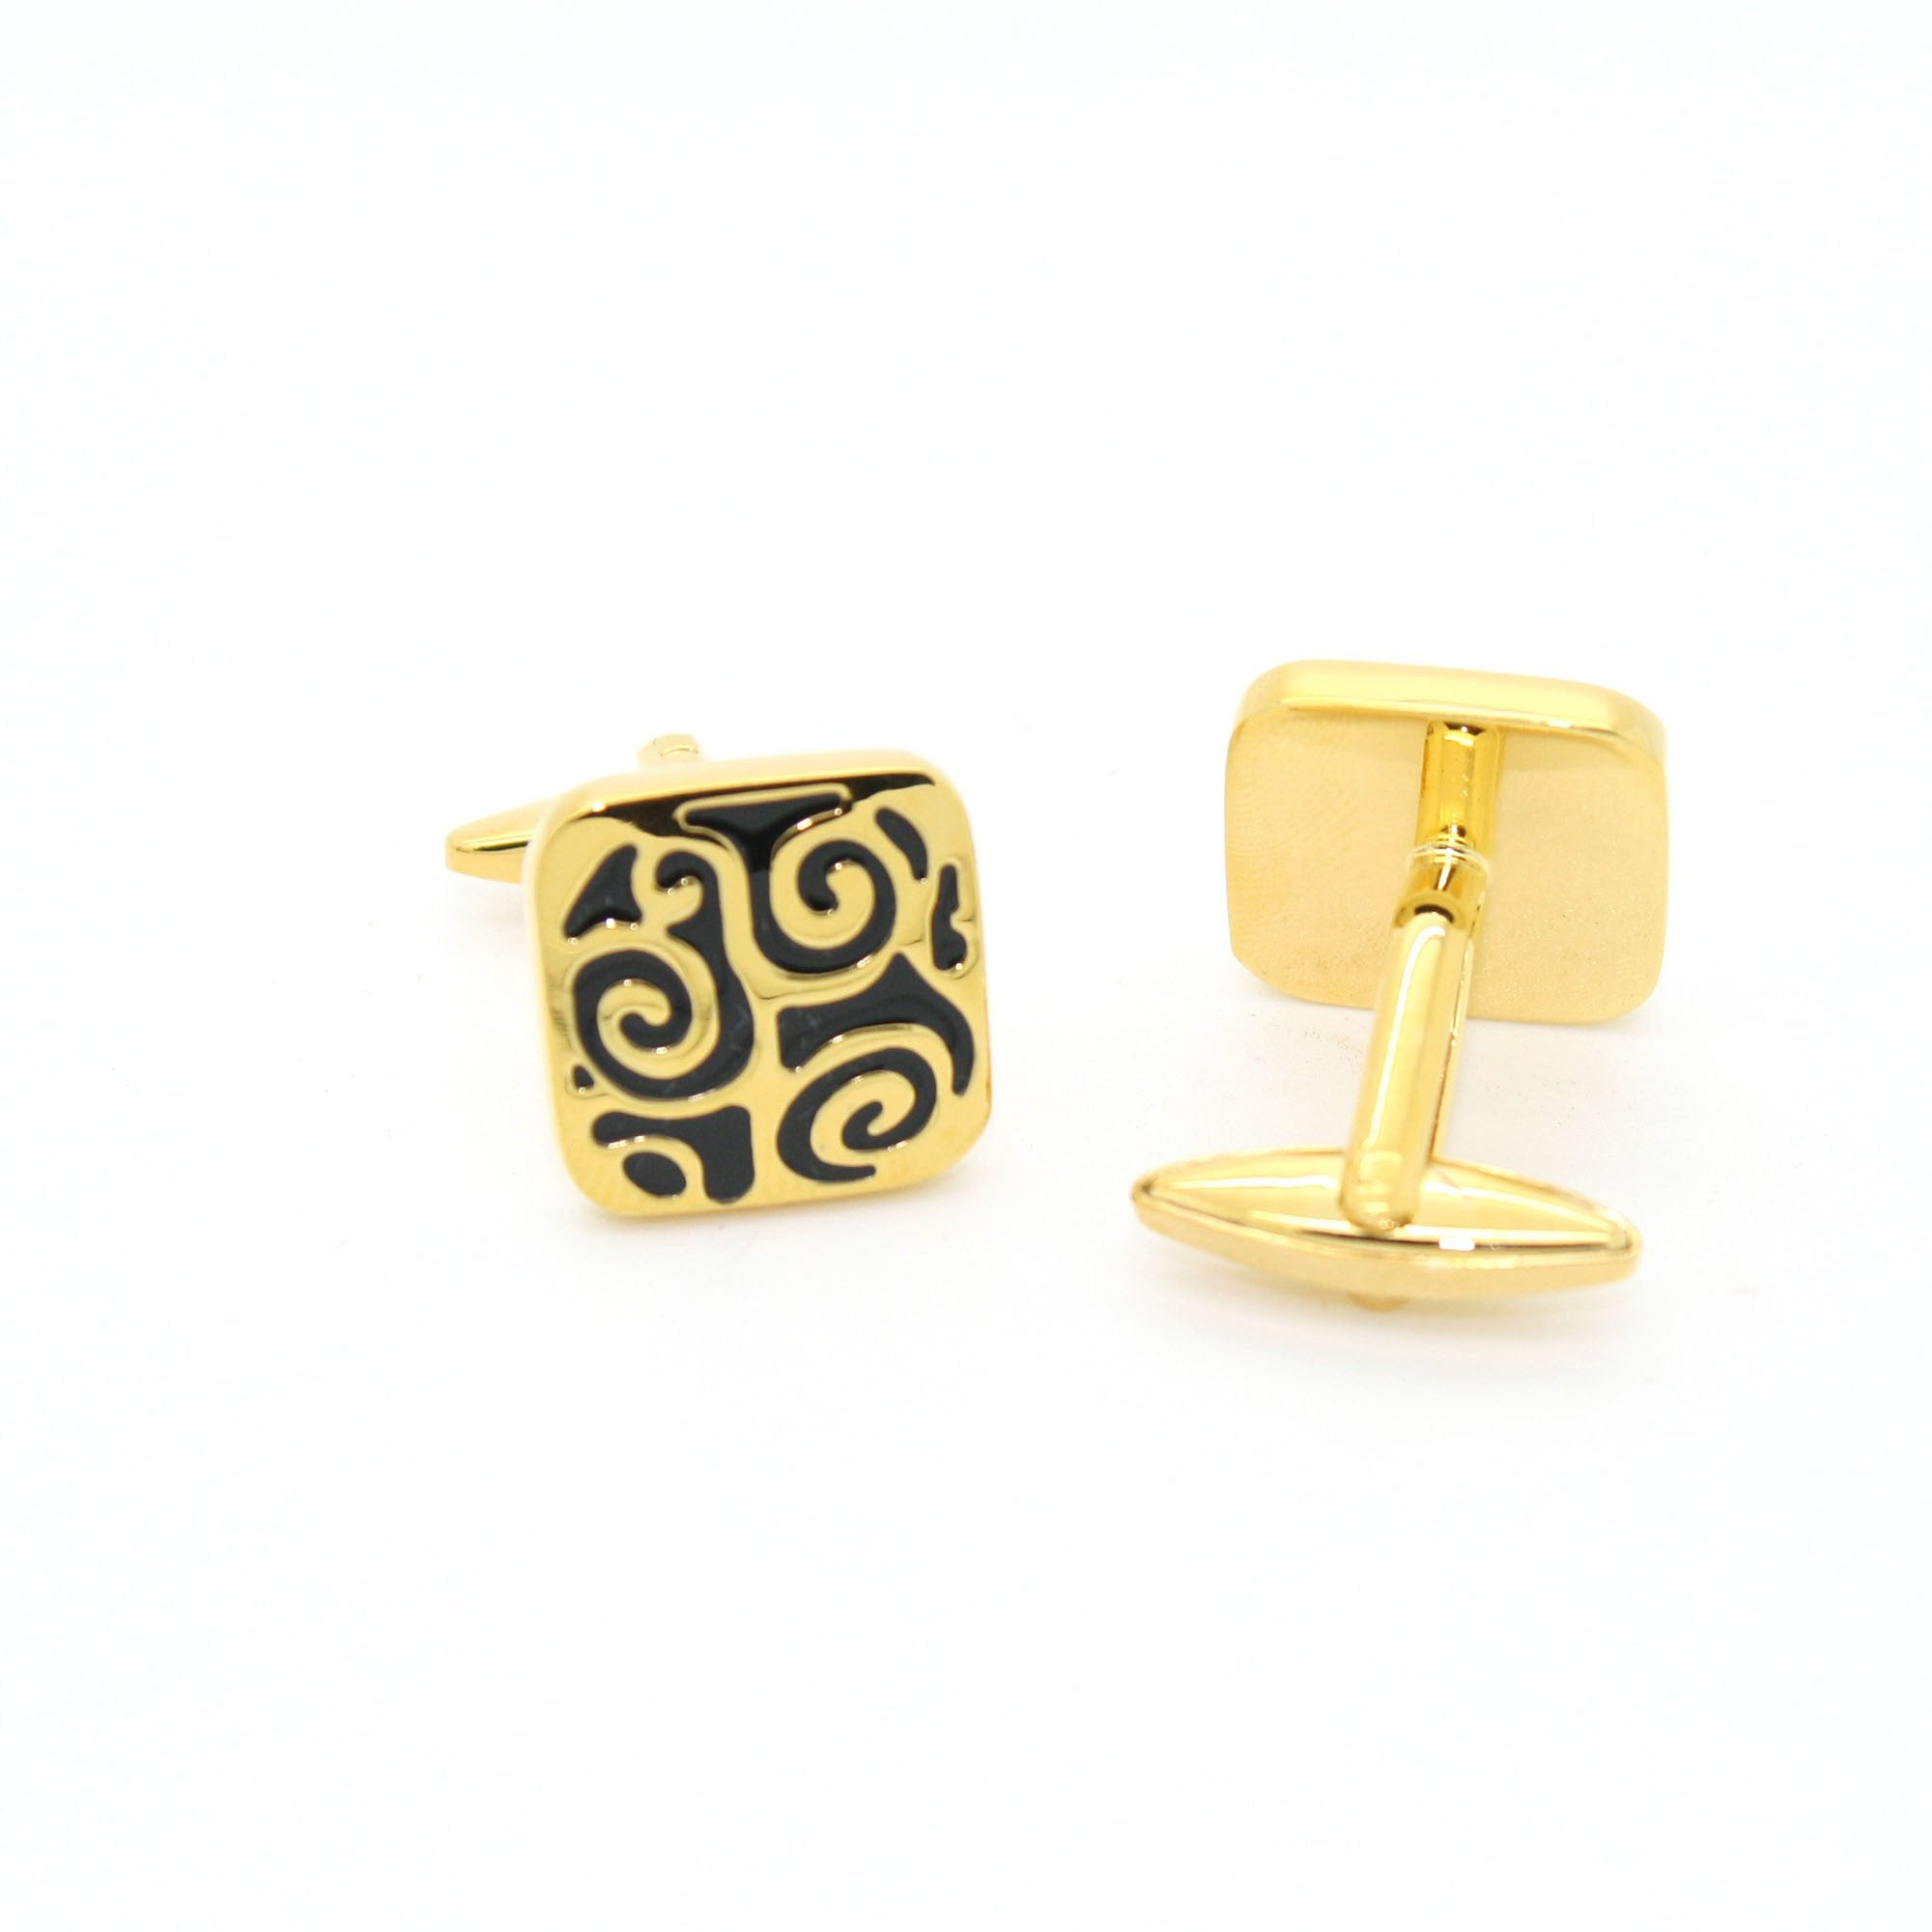 Goldtone Black Design Cuff Links With Jewelry Box - Giorgio's Menswear